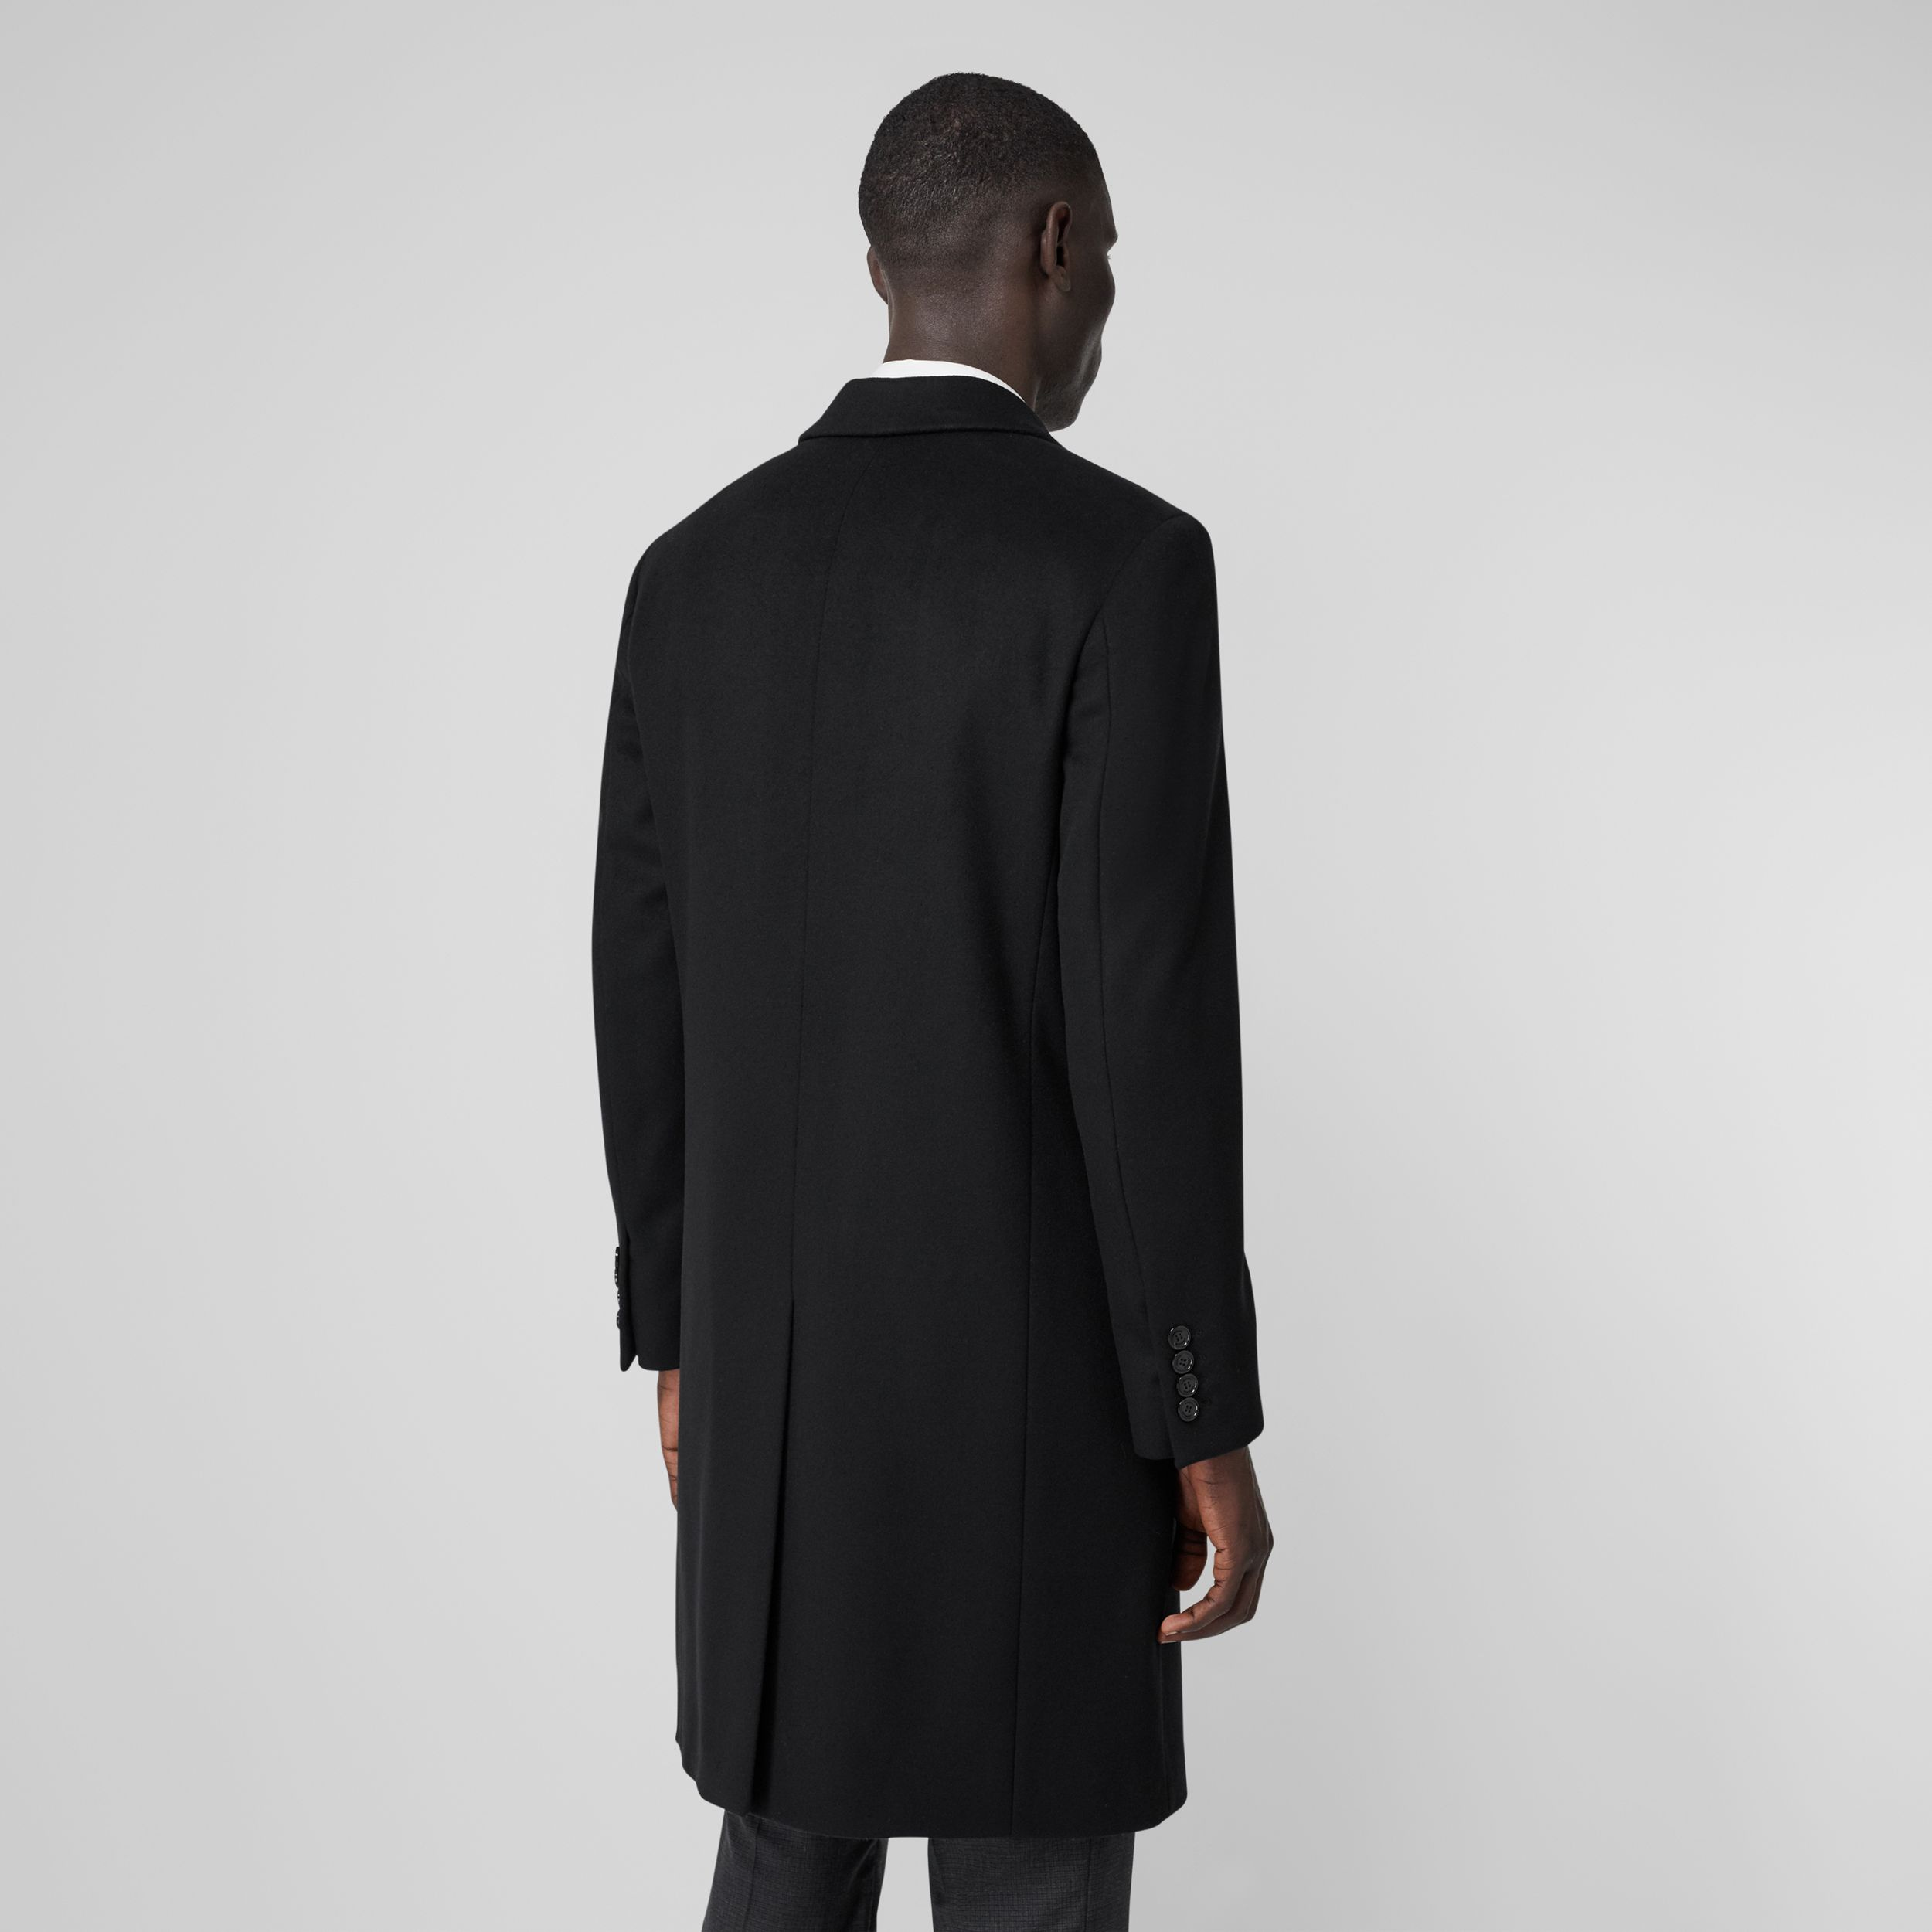 Wool Cashmere Tailored Coat in Black - Men | Burberry - 3